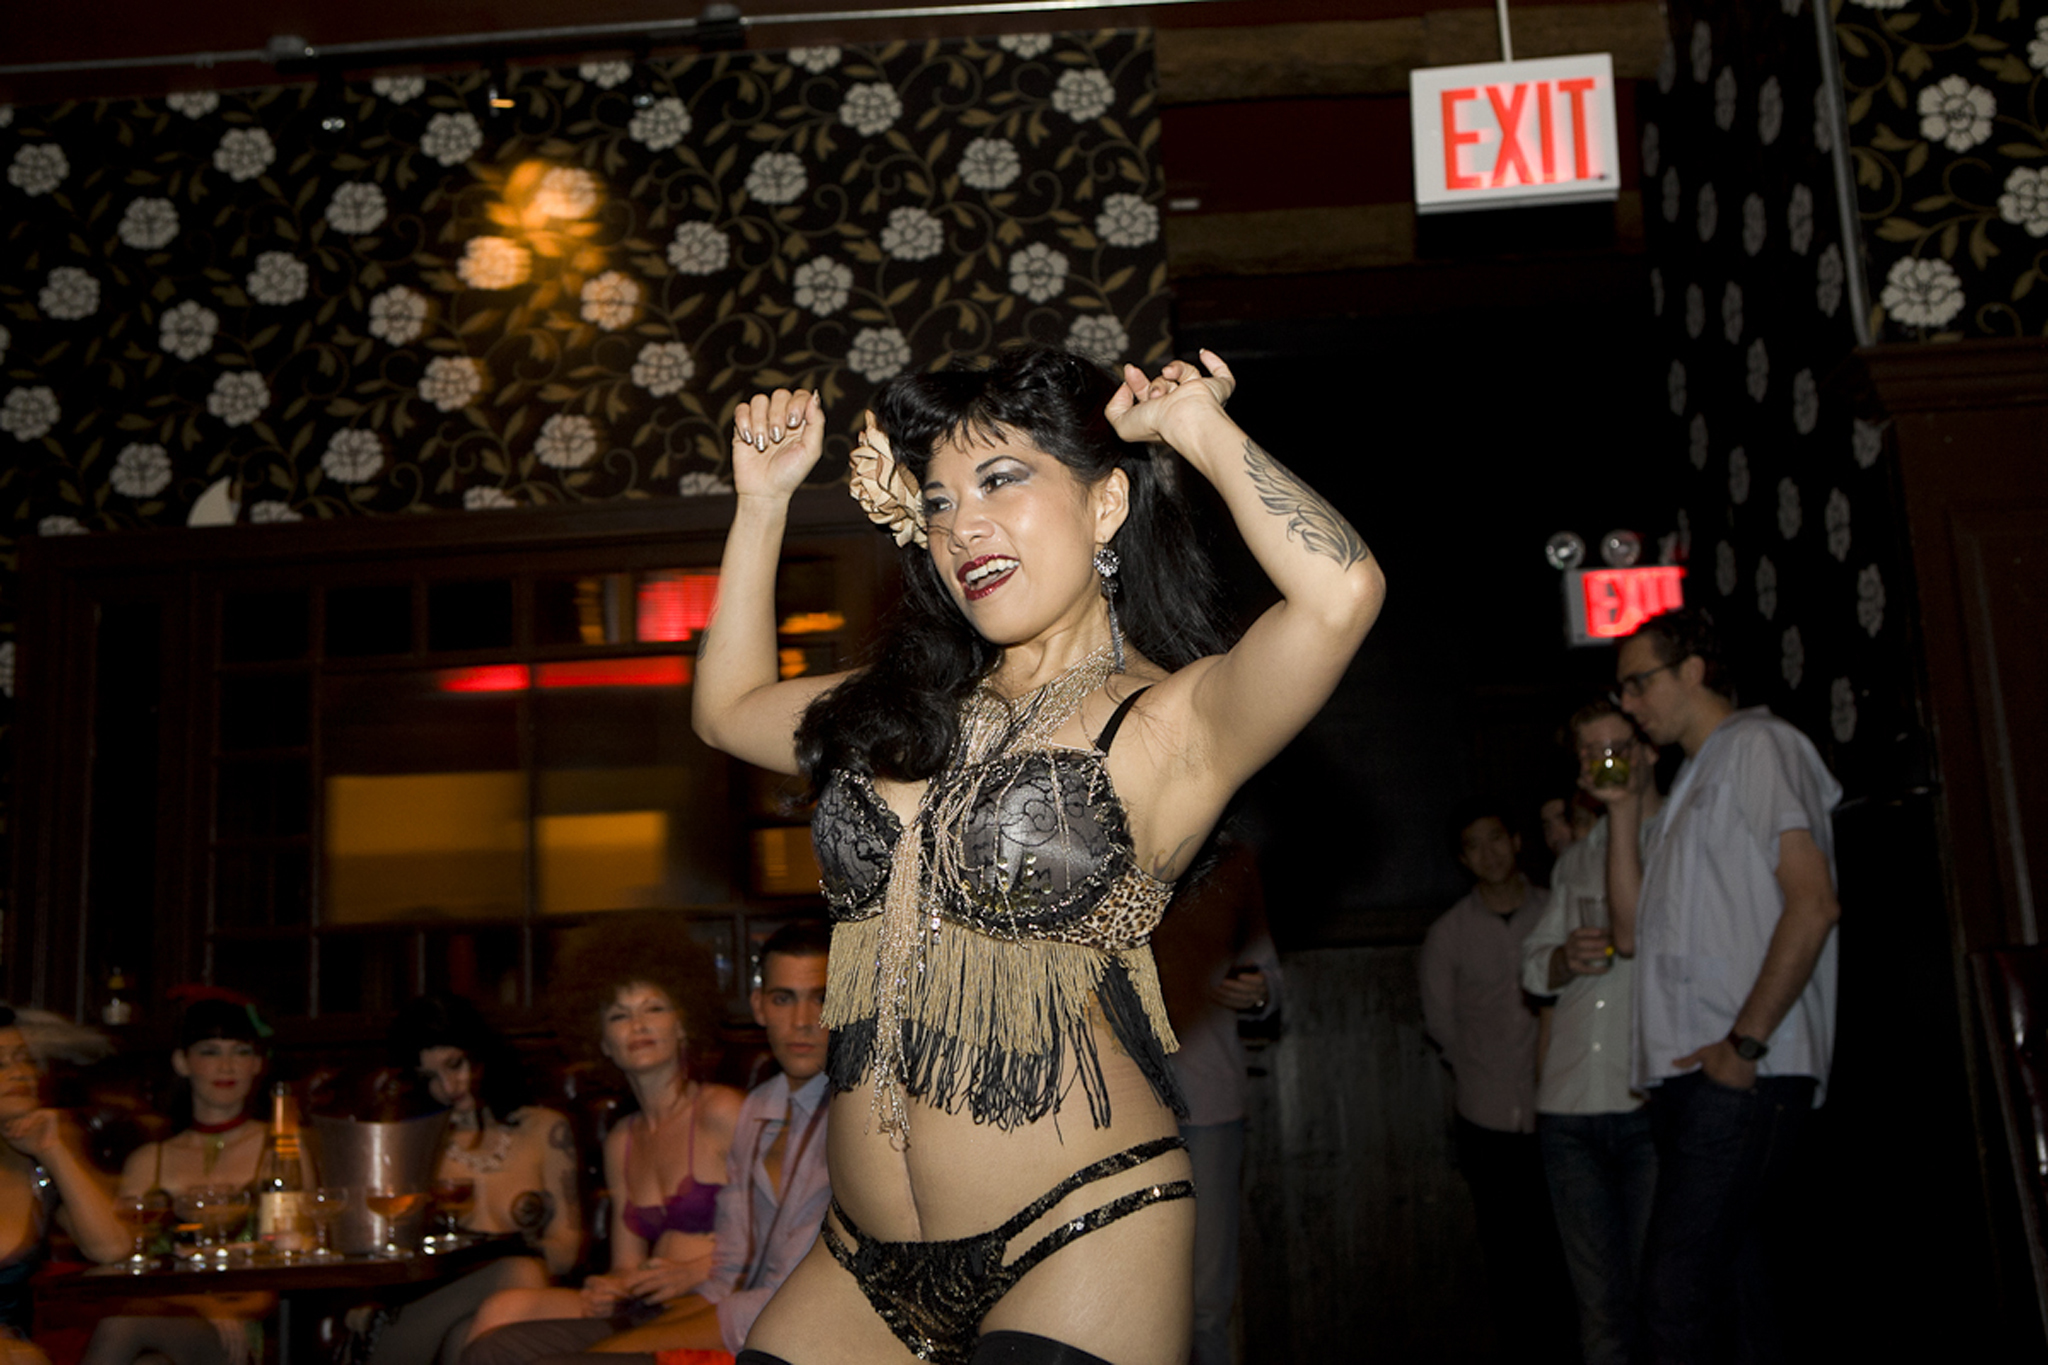 See scantily clad babes on the LES